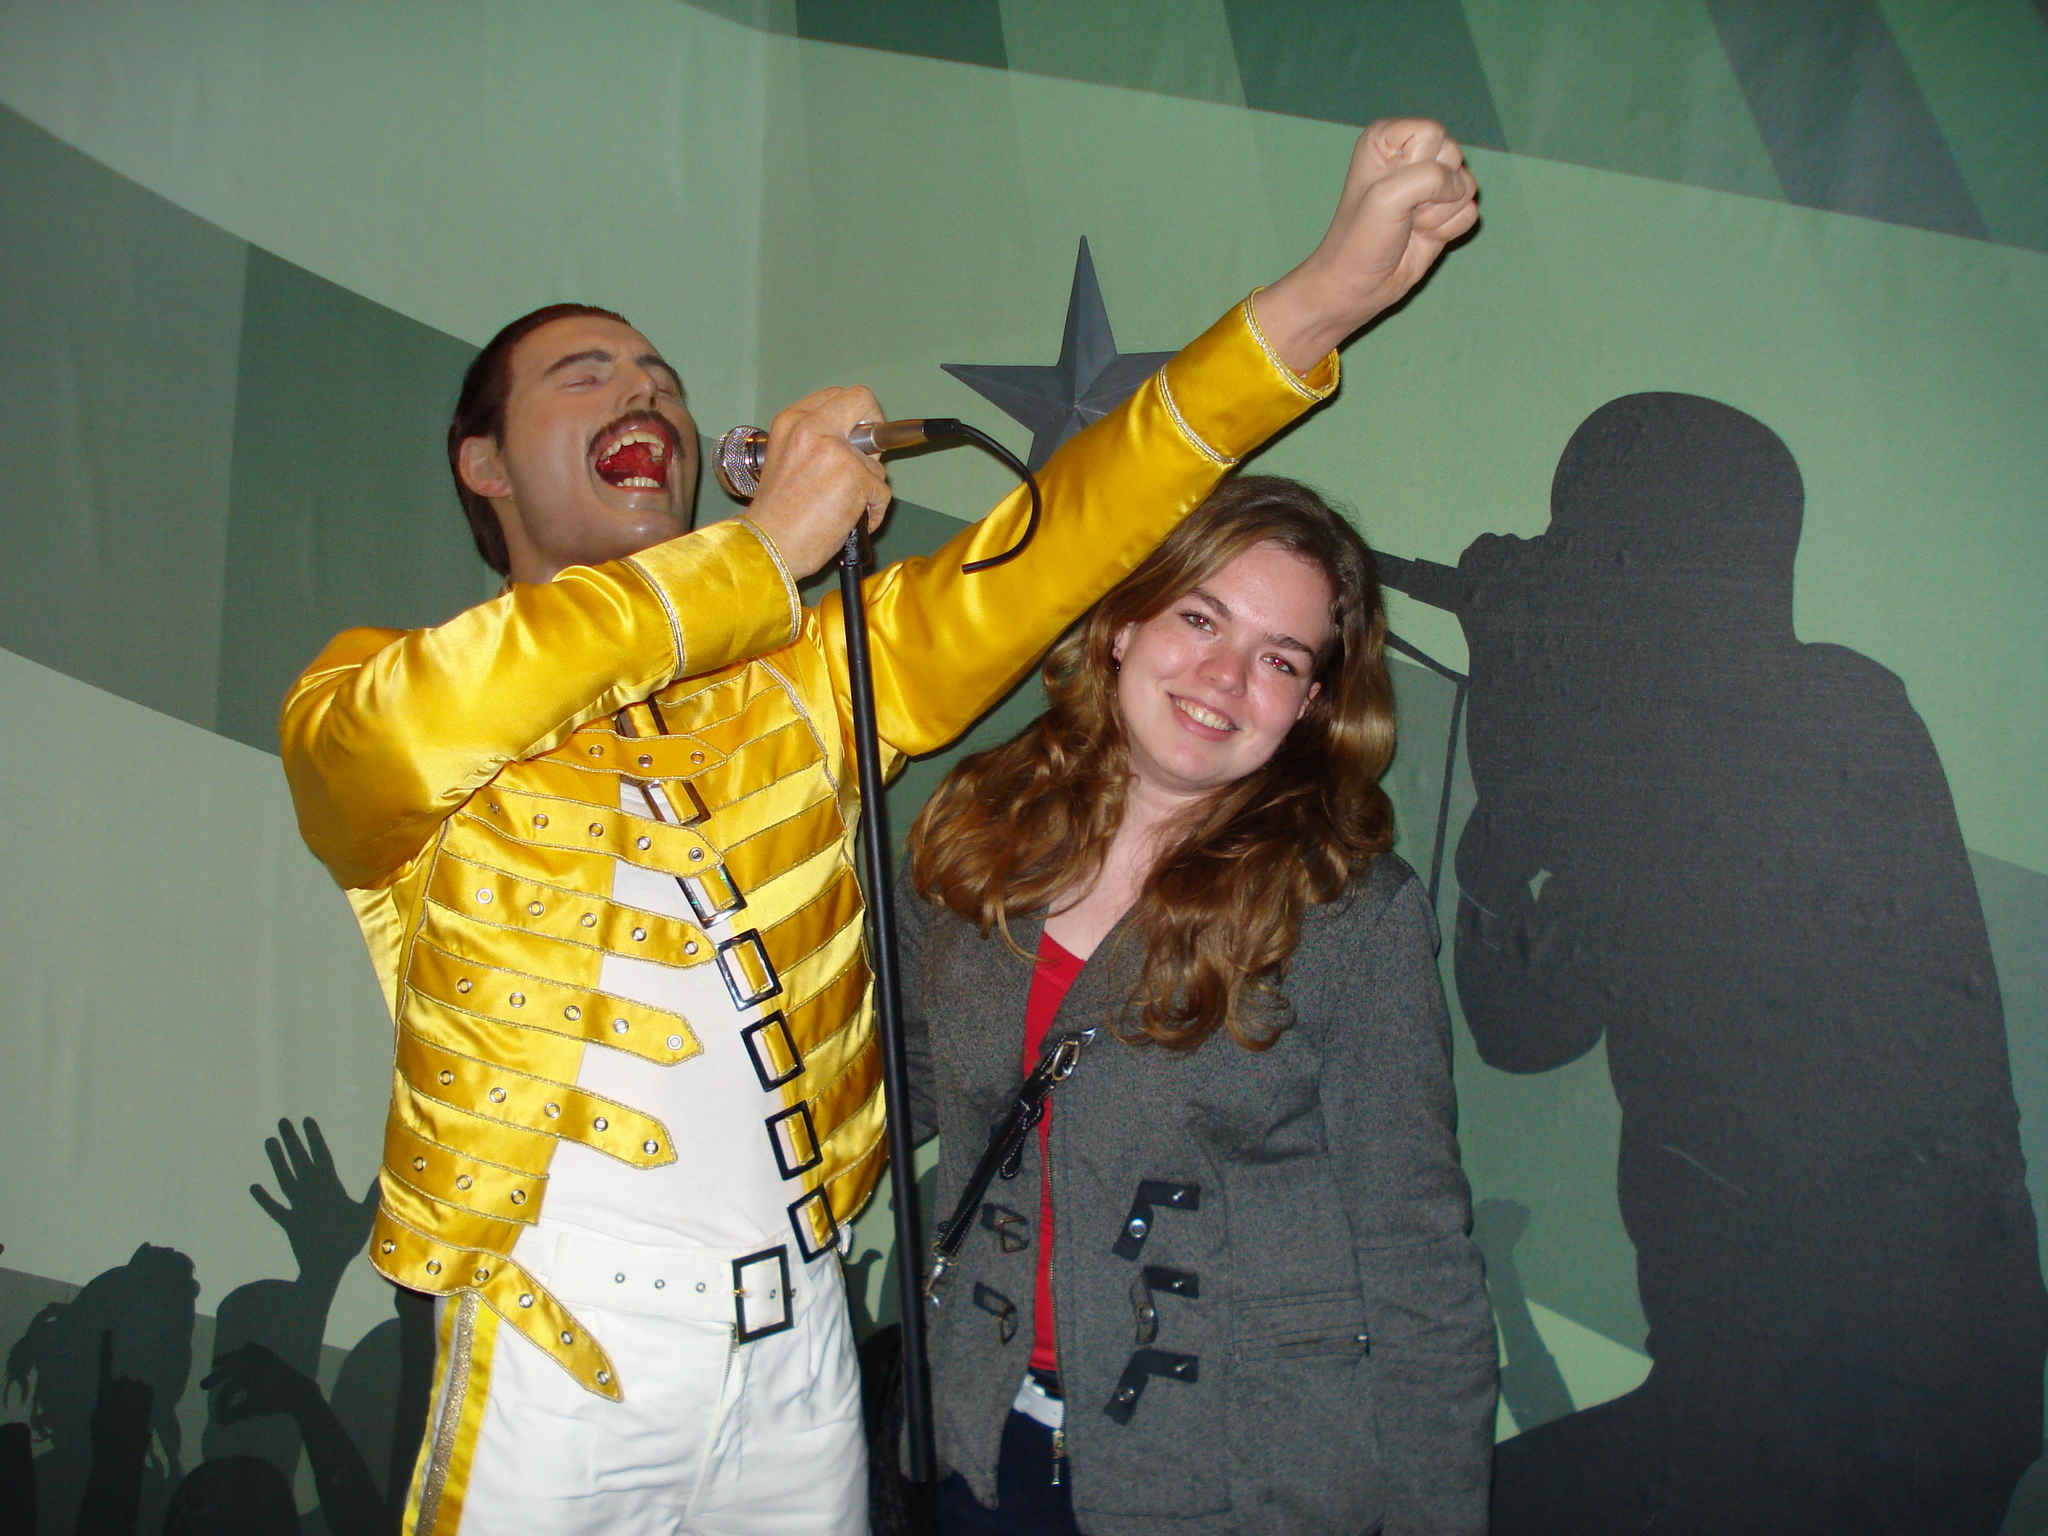 Freddy, Madame Tussauds Amsterdam